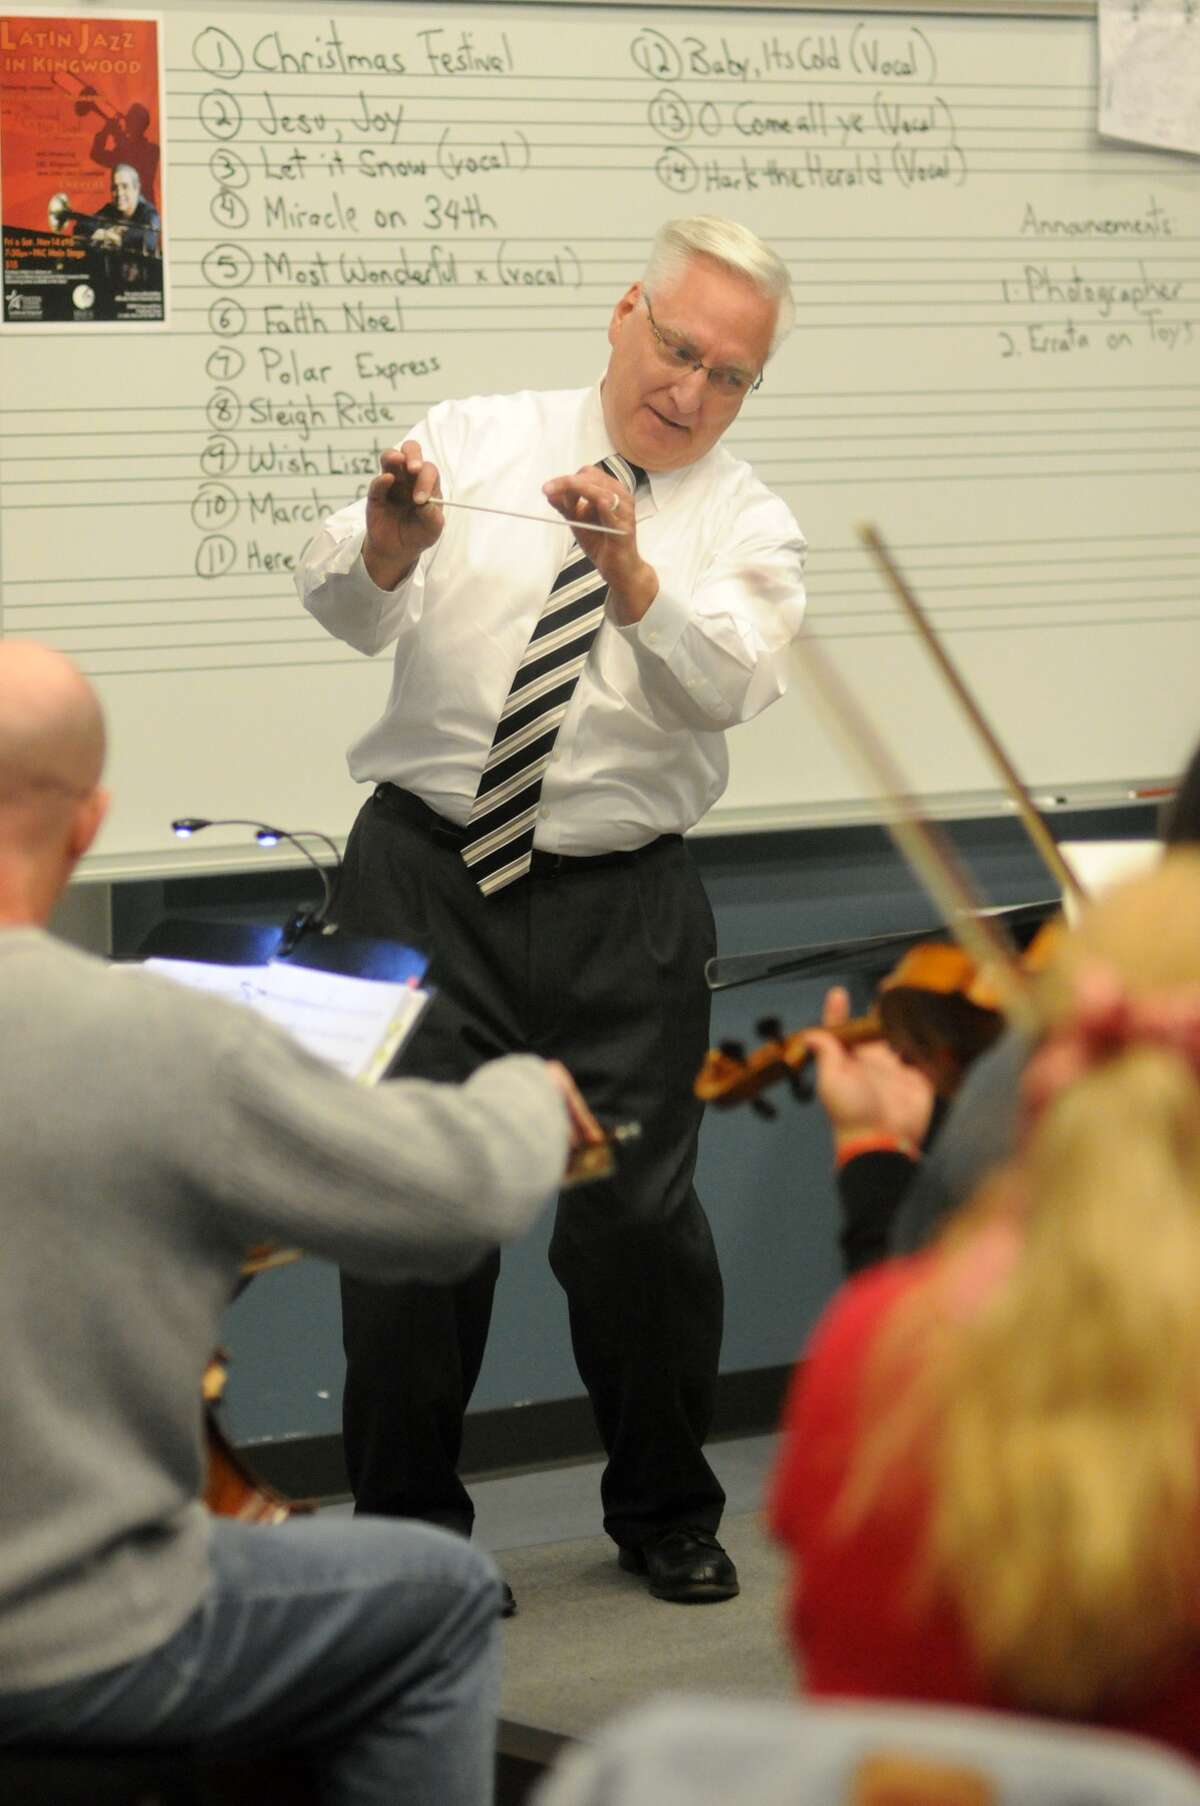 Conductor Gary Liebst, of Conroe, leads the Kingwood Pops Orchestra during their rehearsal for their upcoming holiday show at Lone Star College - Kingwood.